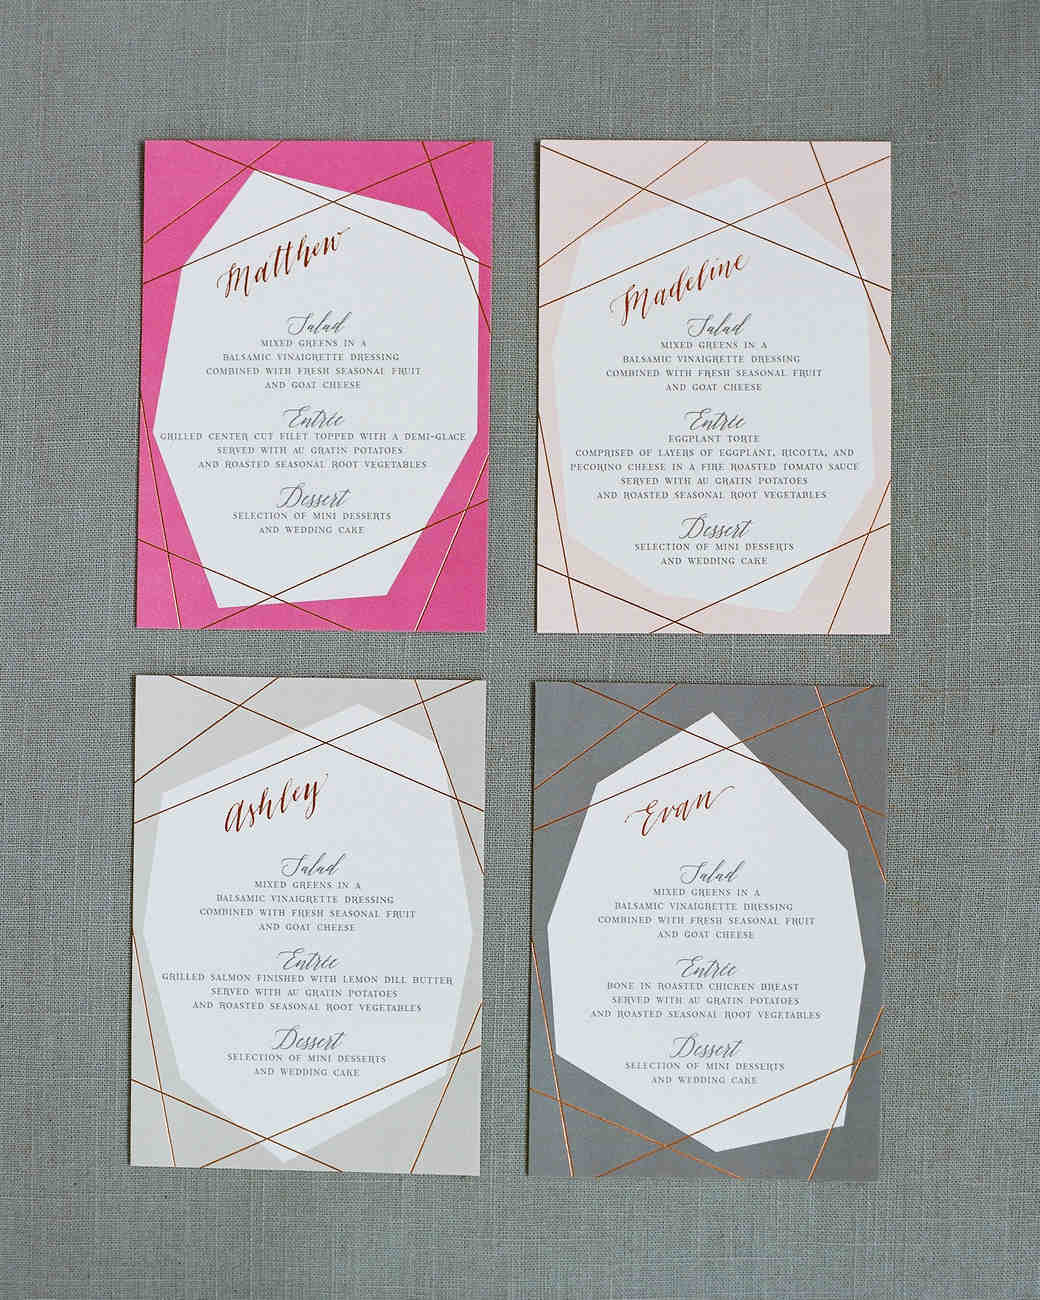 maddy-mike-wedding-menu-575.9778.05c.2015.49-6134174-0716.jpg